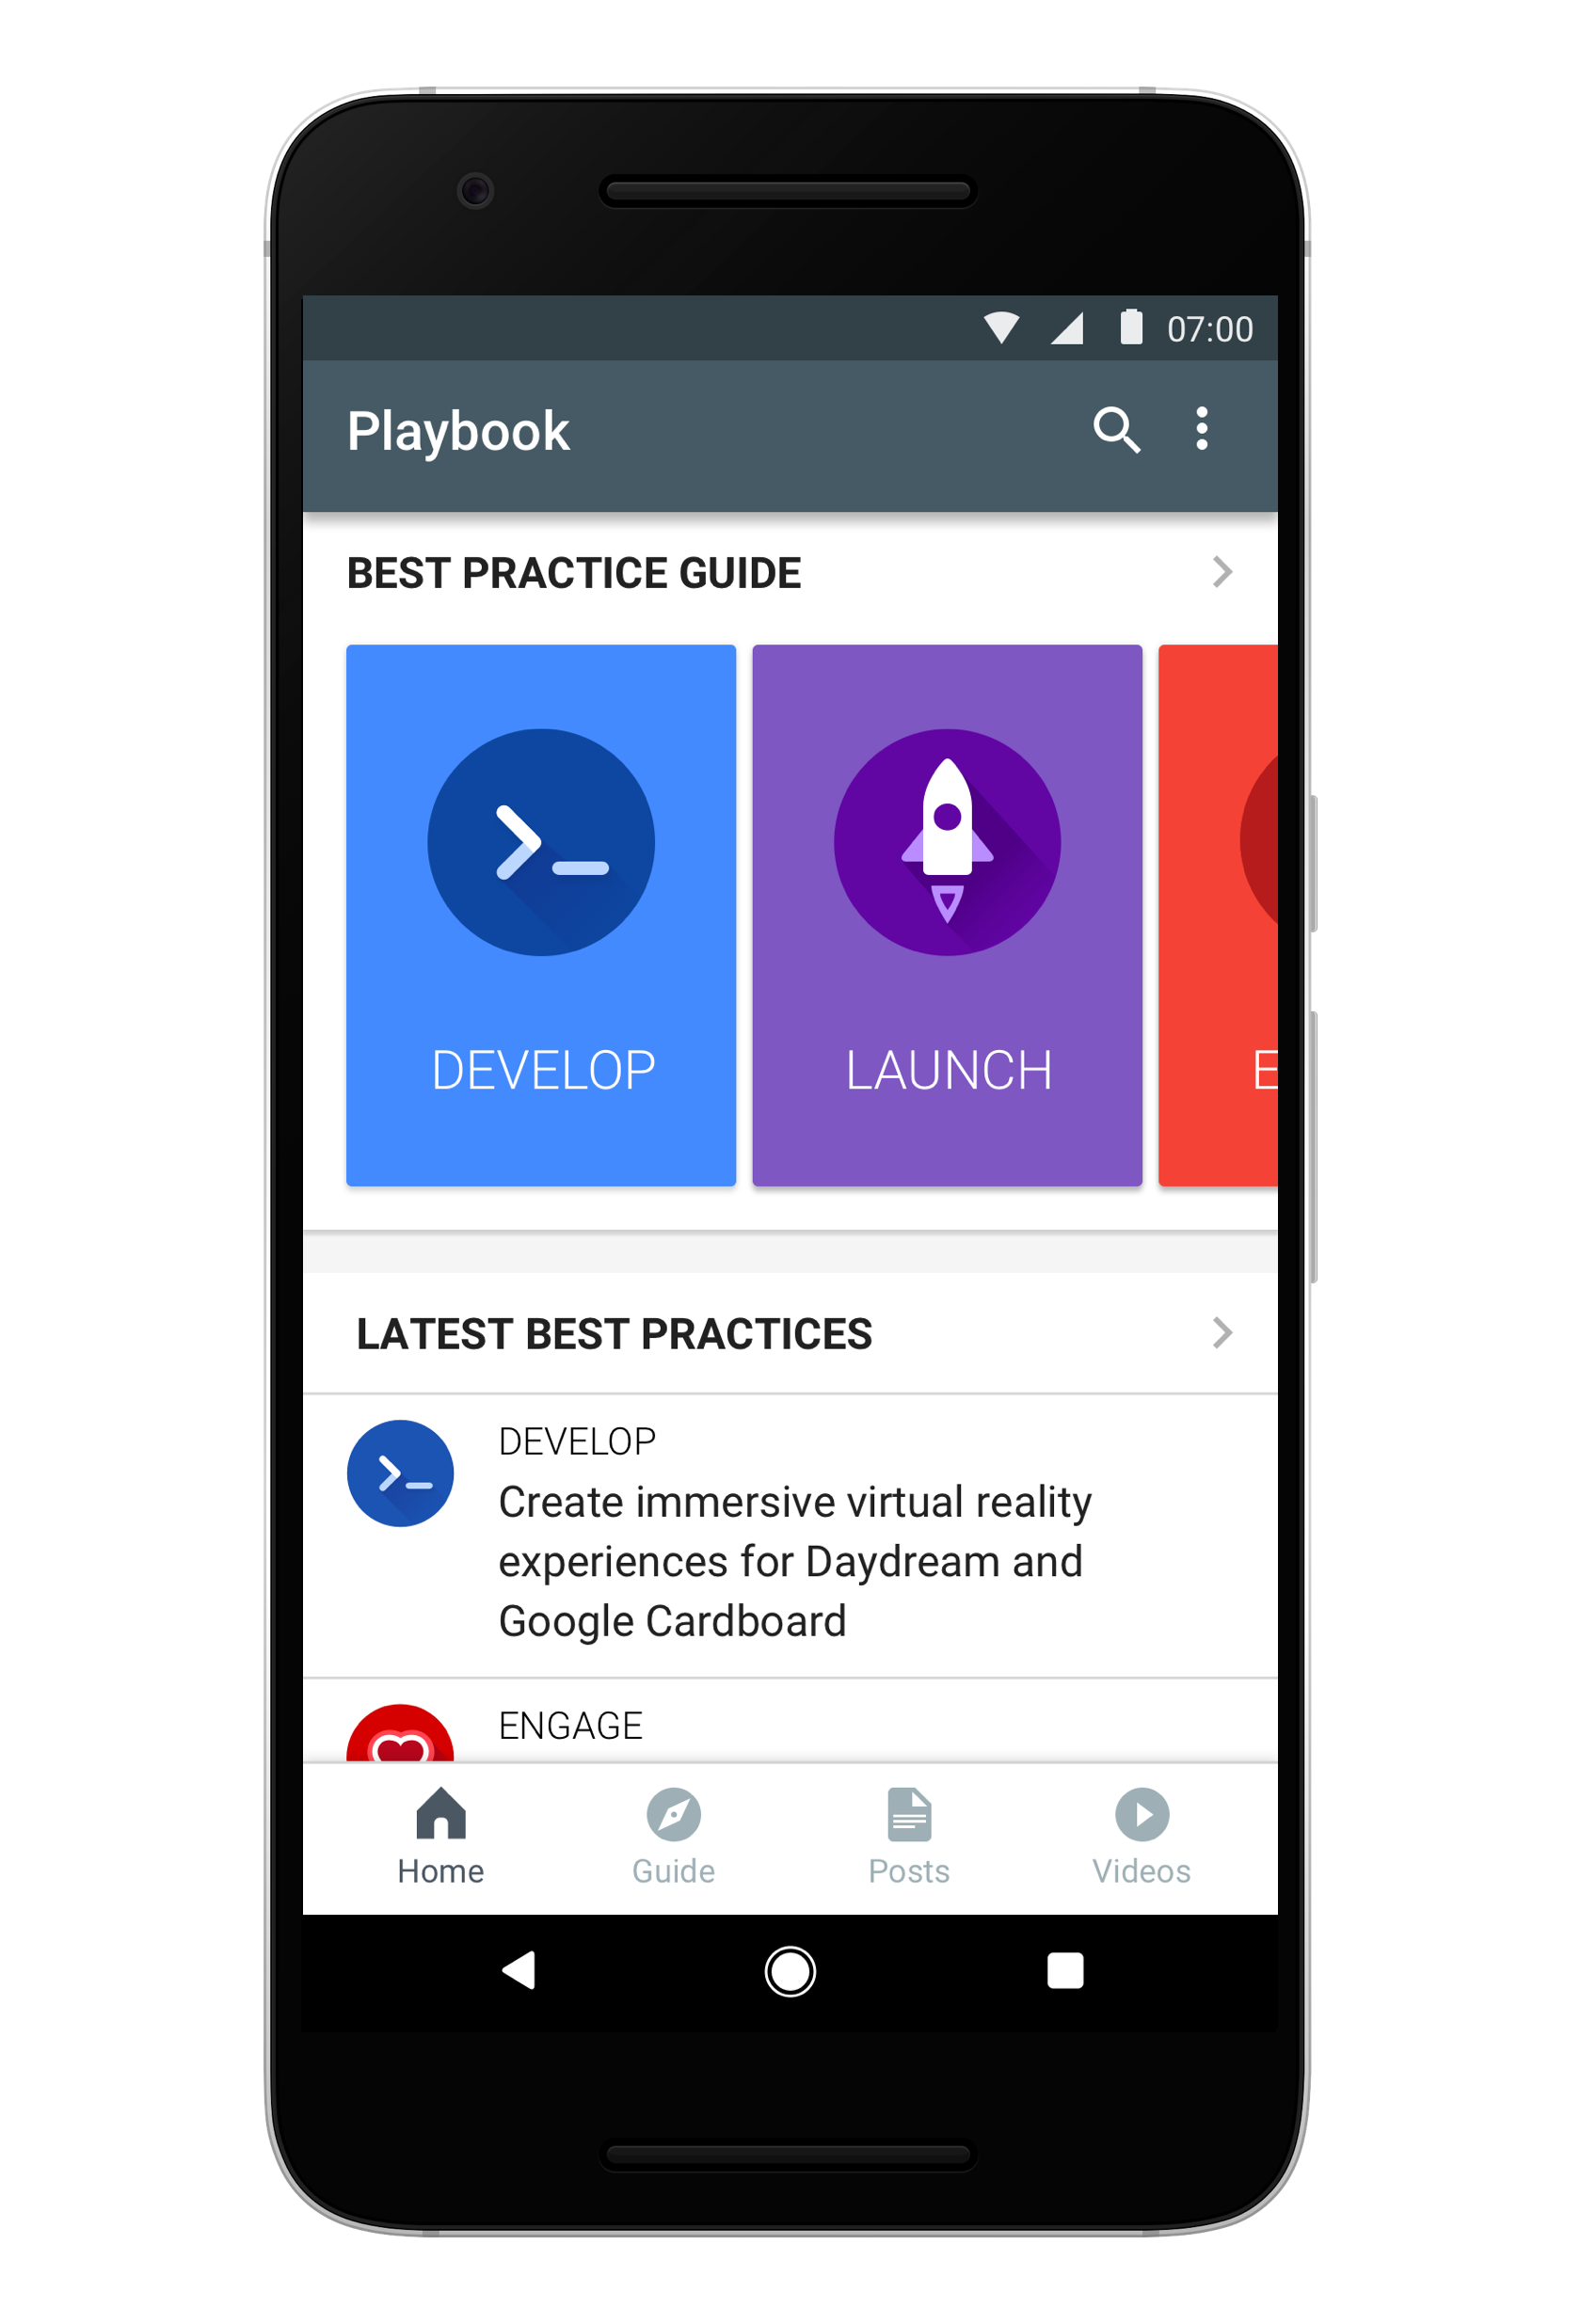 playbook for developers ribot users can choose subjects they are interested in such as design marketing games testing etc articles videos and blog posts are shown on the home